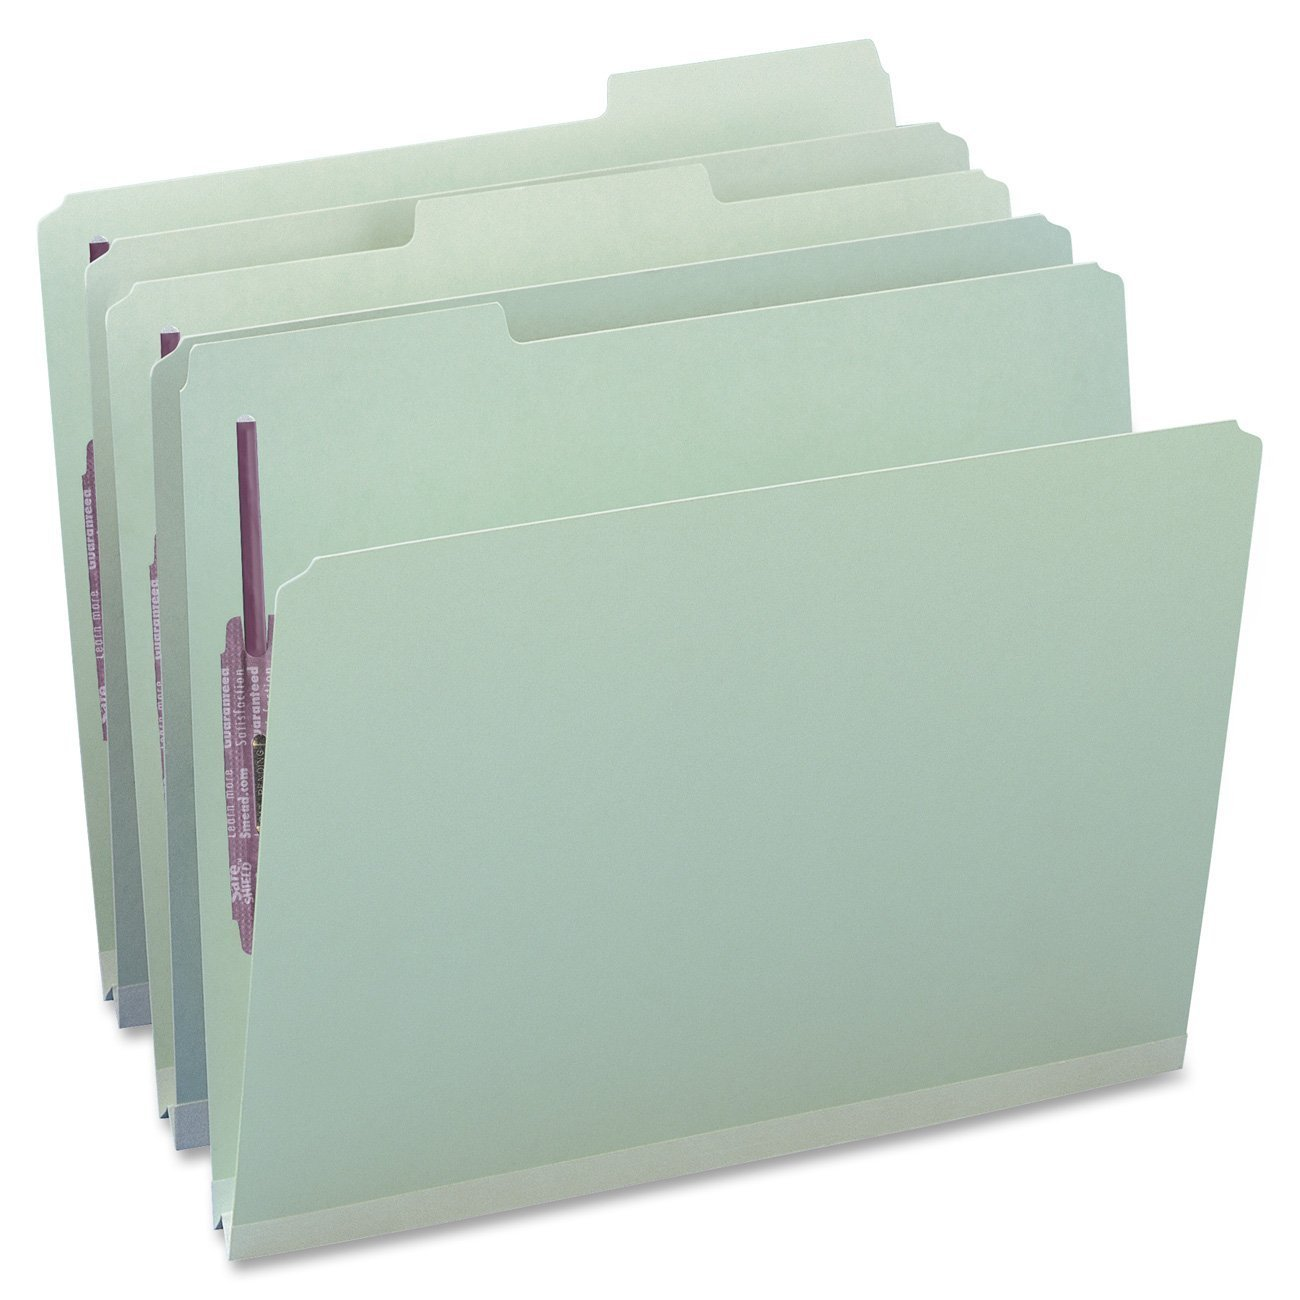 Smead 14931 One Inch Expansion Fastener Folder, 1/3 Top Tab, Letter, Gray Green (Pack of 50)